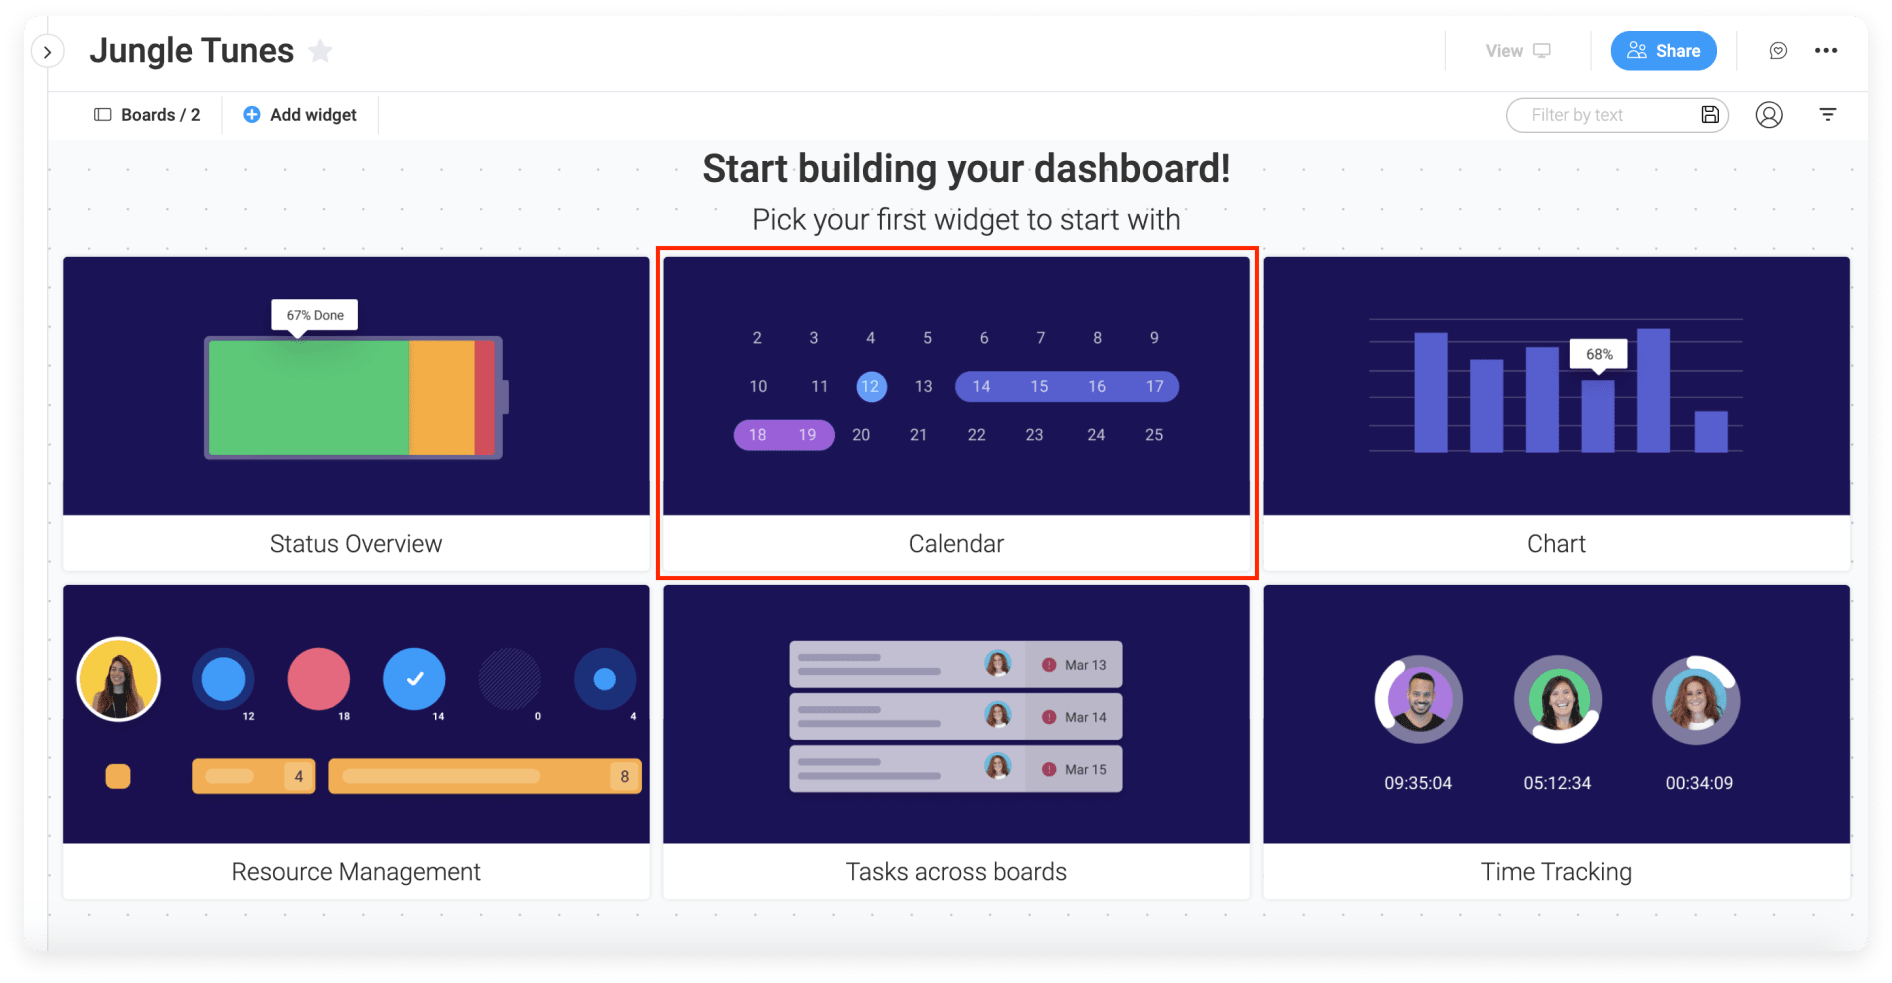 monday.com's platform allows users to create a Calendar Widget in their projects